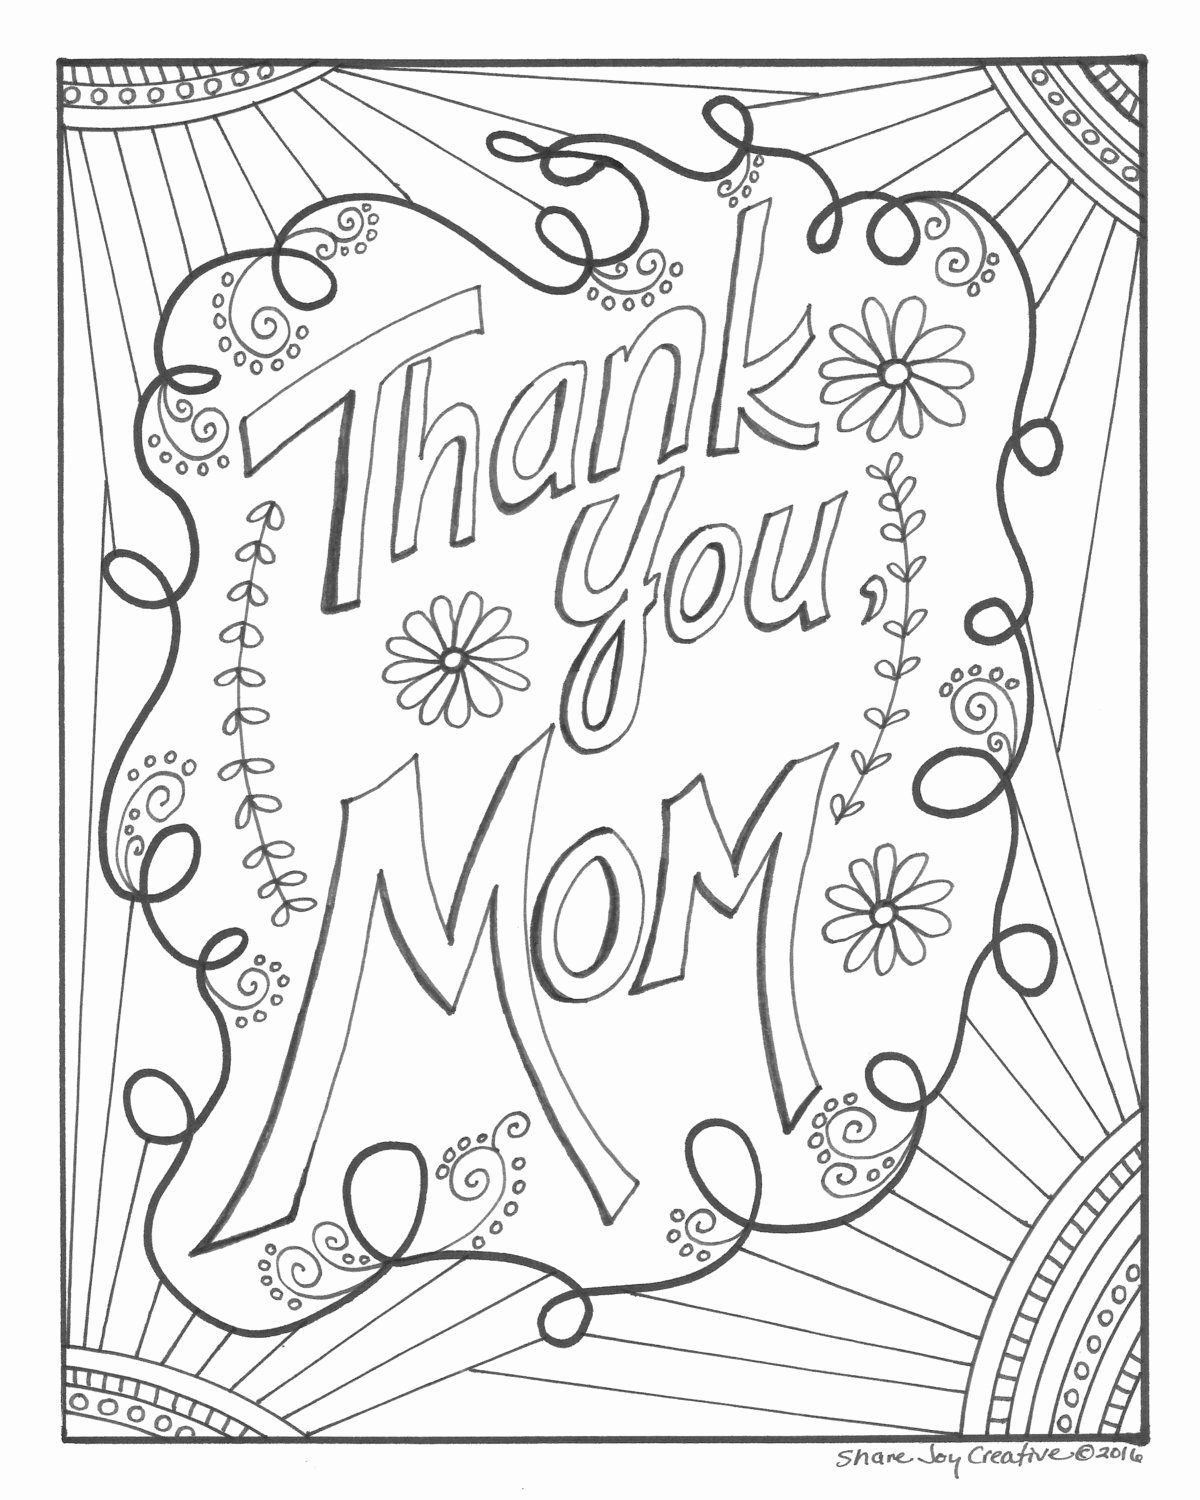 Thank You Coloring Page New Thank You Mom Coloring Page Mothers Day Coloring Pages Mom Coloring Pages Witch Coloring Pages